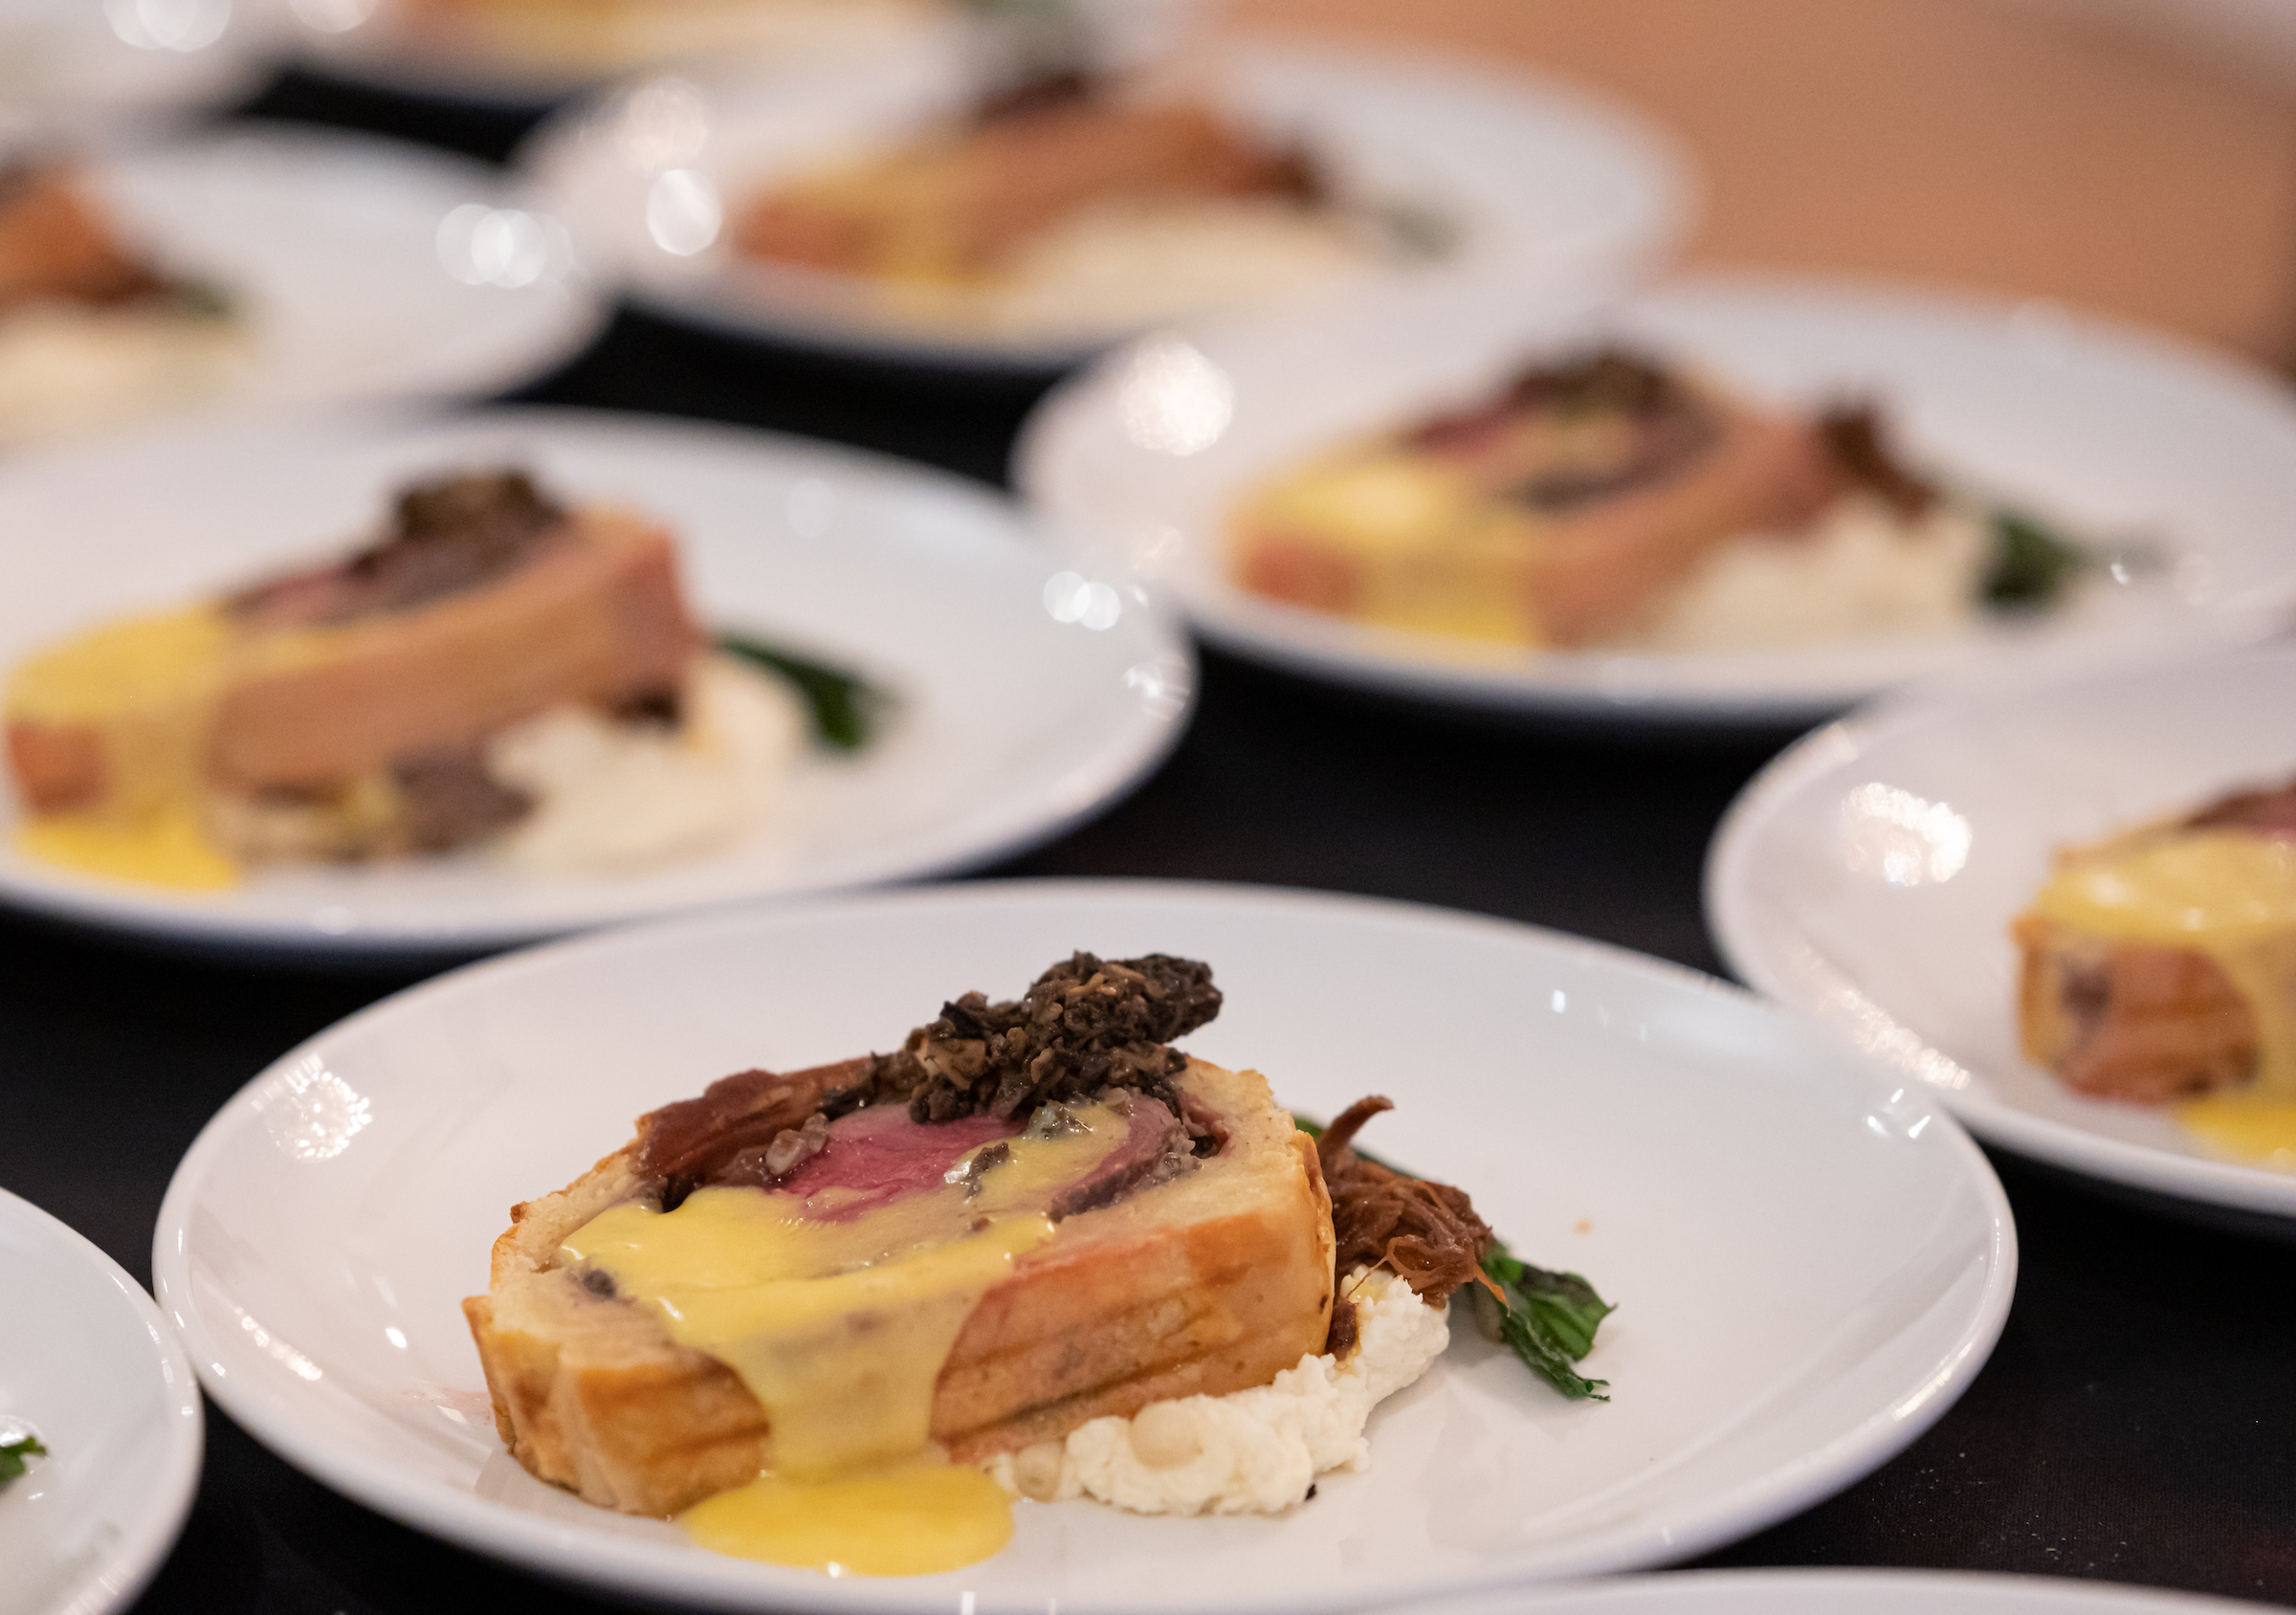 Certified Angus beef wellington over braised short ribs with sauteed morels, charred ramps, celery root-horseradish puree and hollandaise